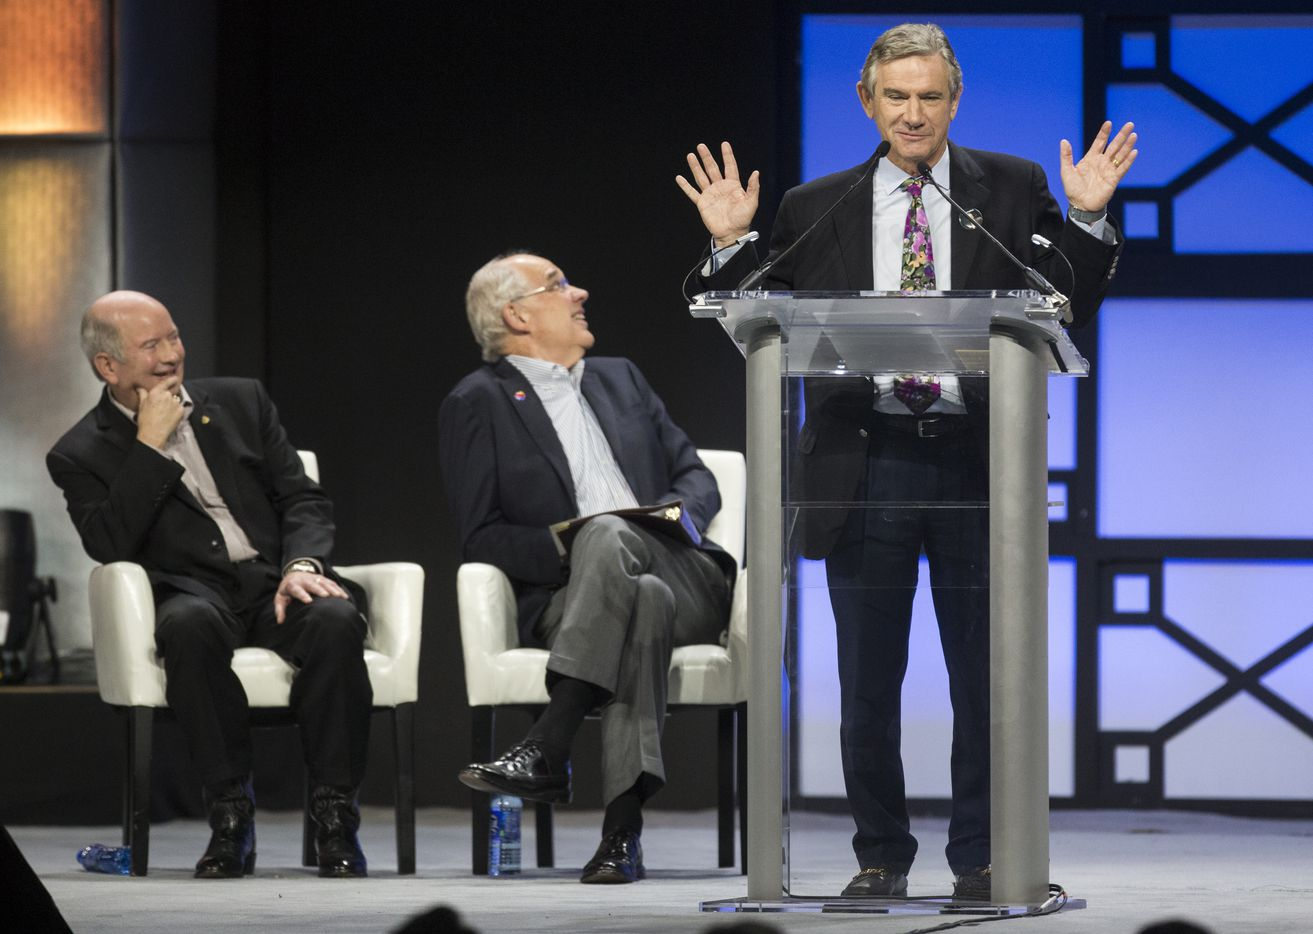 Craig Hall, right, speaks, as Southwest Airlines Presiding President Bill Cunningham, center, and Retired United States Air Force General Duncan McNabb look to the video board during a celebration of life event for Southwest Airlines Co-Founder Herb Kelleher on Tuesday, Jan. 22, 2019 at the Kay Bailey Hutchison Convention Center in Dallas.